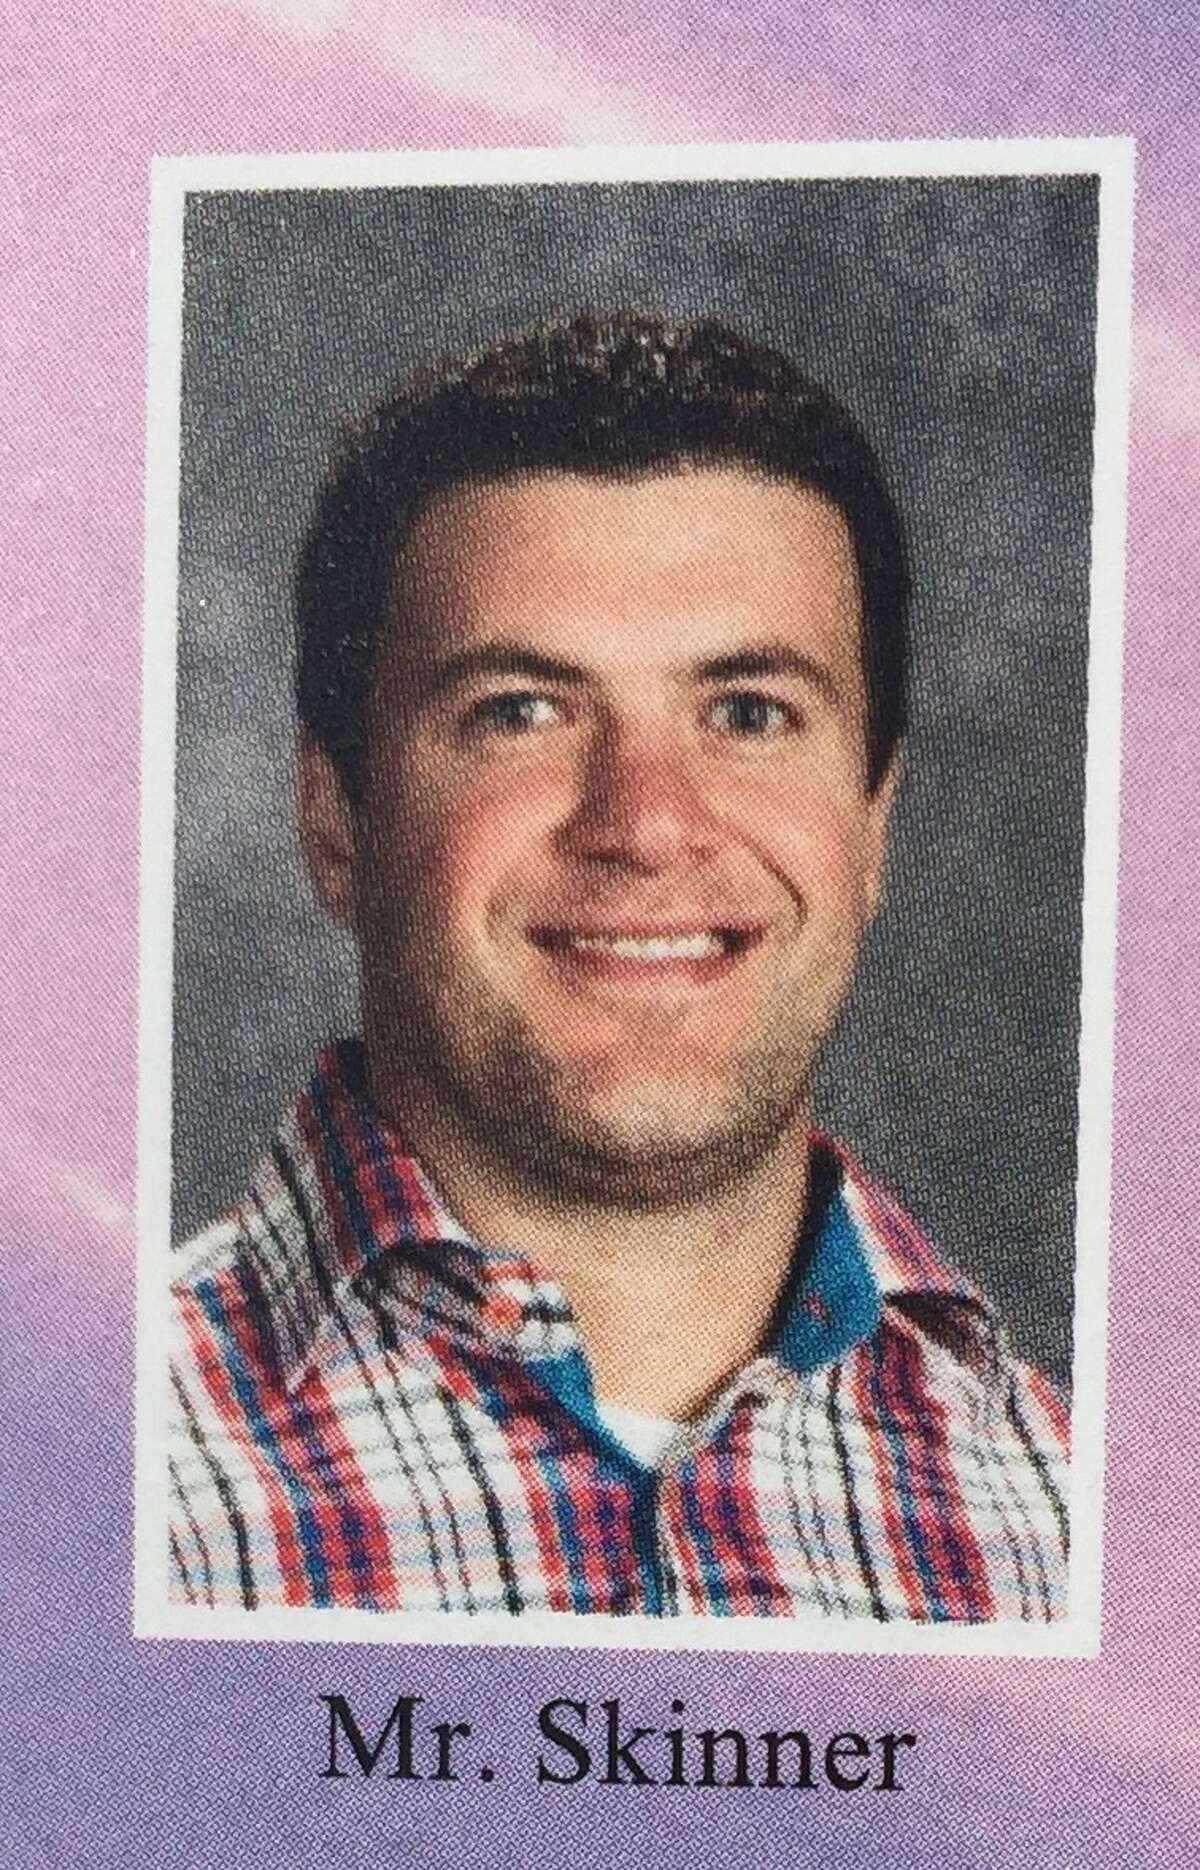 Orenda Elementary School fifth-grade teacher Brian Skinner, as seen in a Shenendehowa Central District 2017 yearbook photo. Skinner was killed in a police shooting at his Glenville home July 28, 2017.